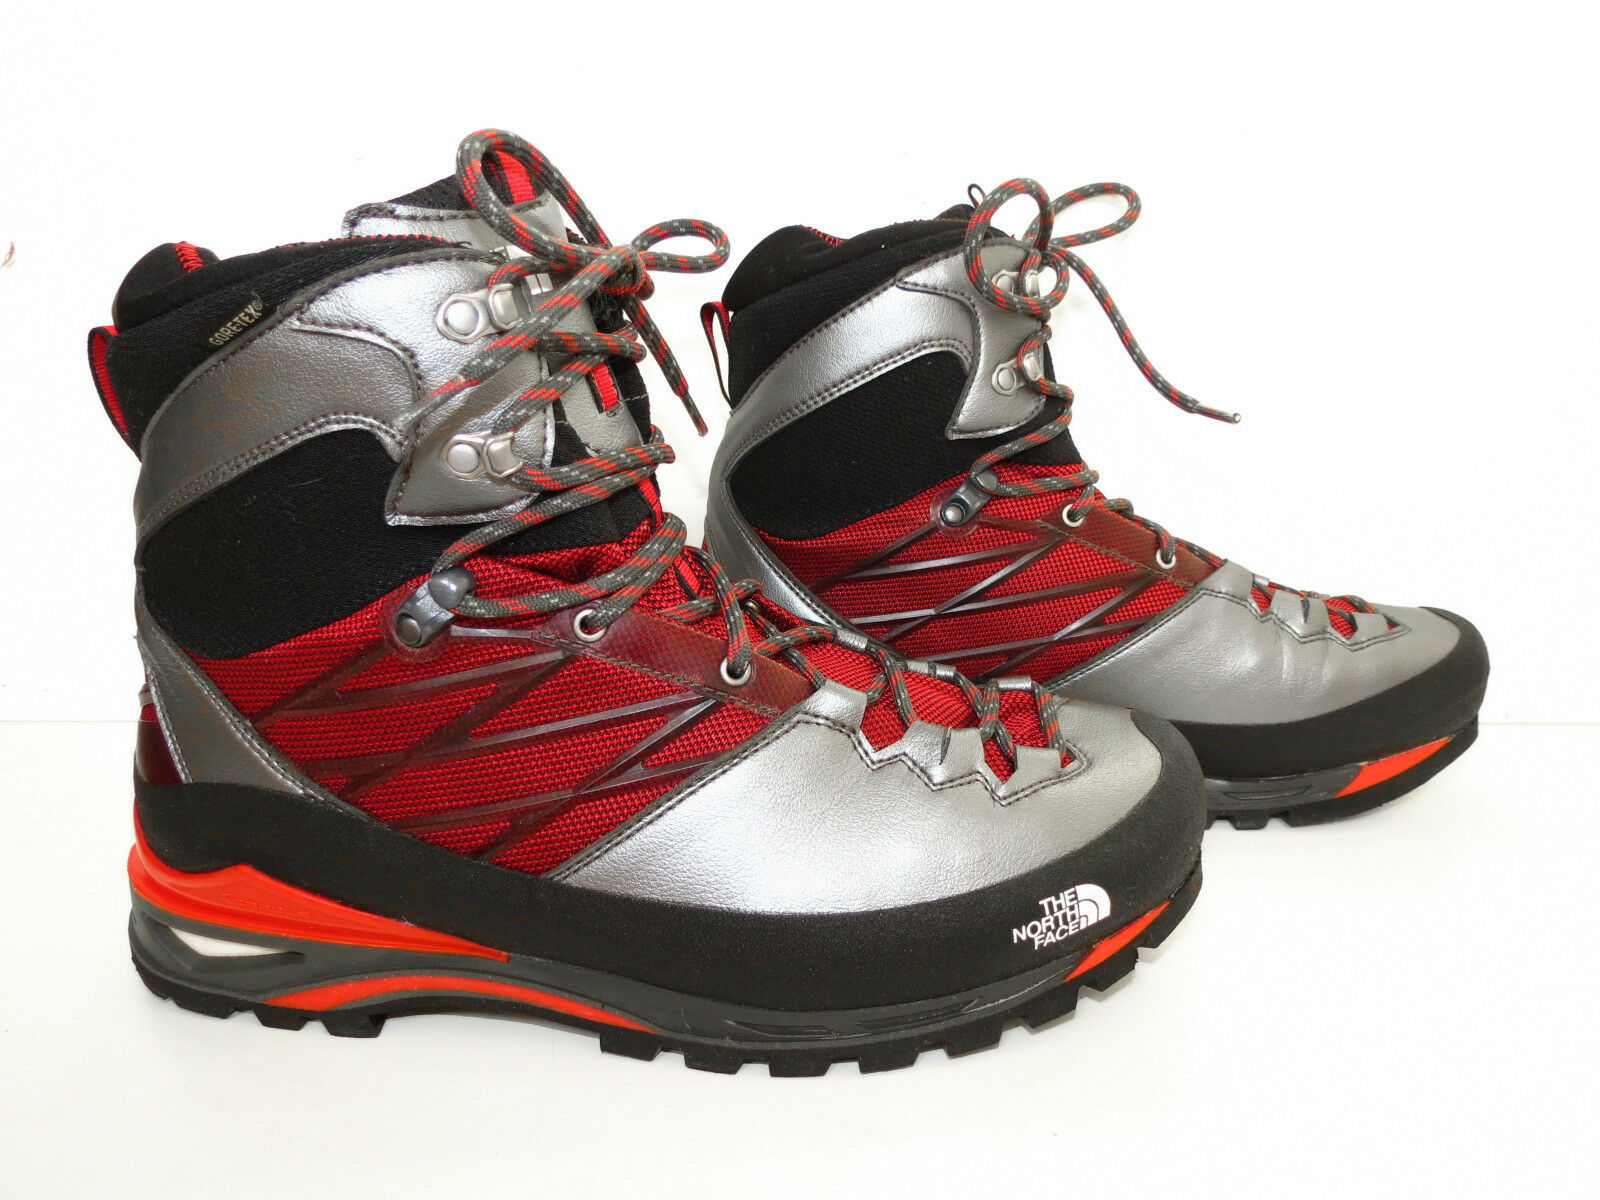 The North Face Hiking Verto S4K Hiking Face Mountaineering Stiefel UK11 EU45.5 US12 ffab08